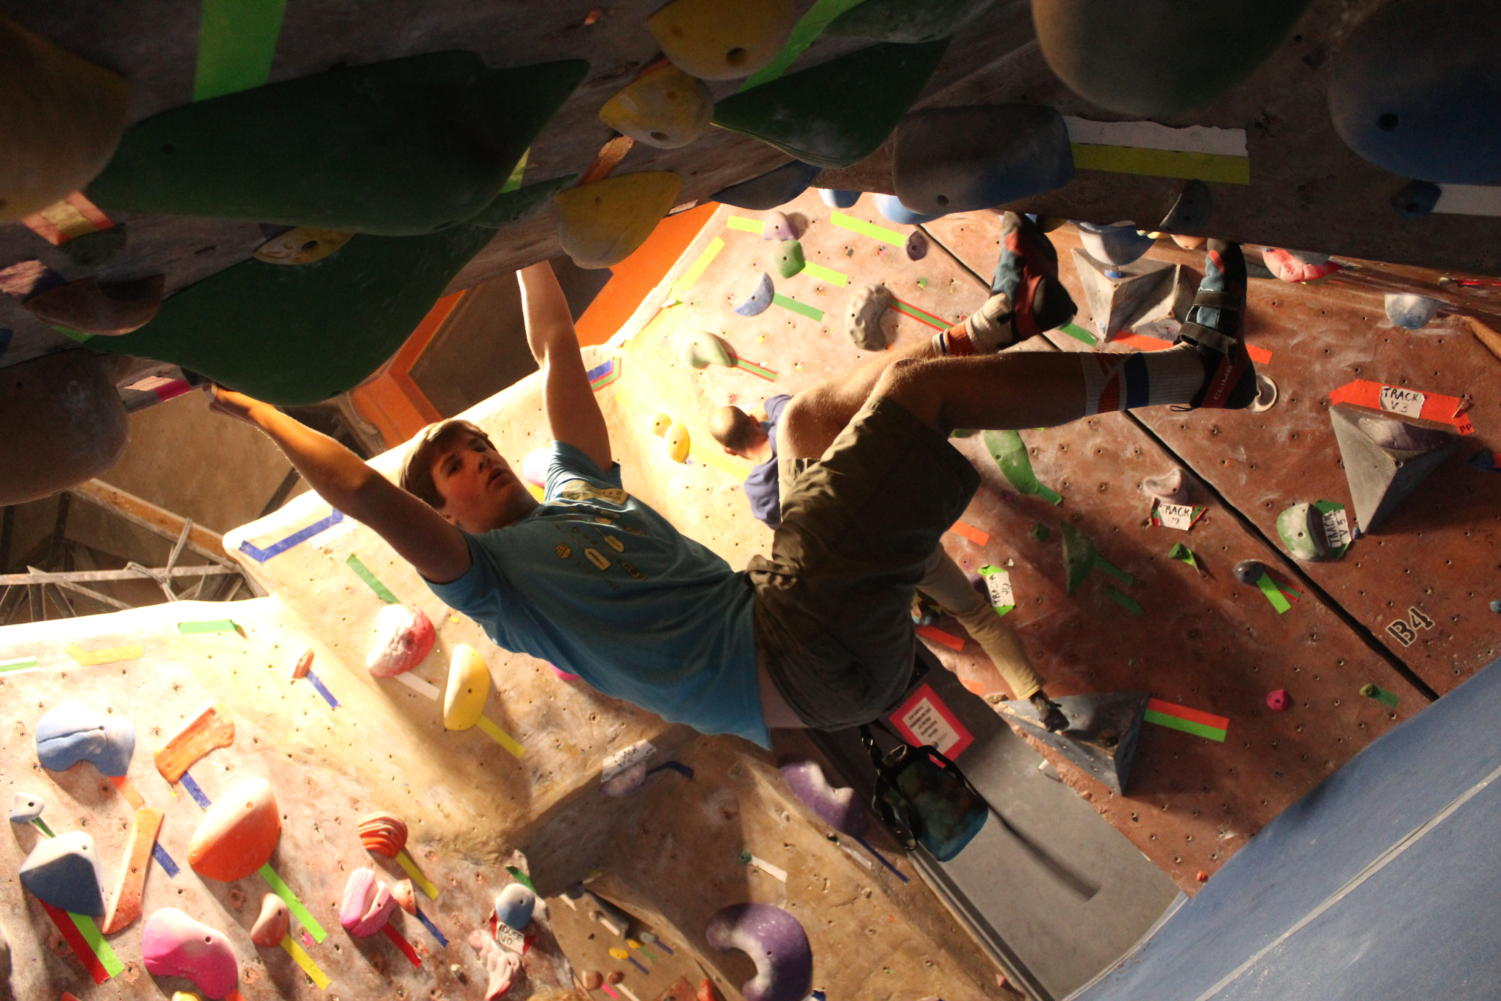 Senior Mark Paley shares his new favorite activity: rock climbing.